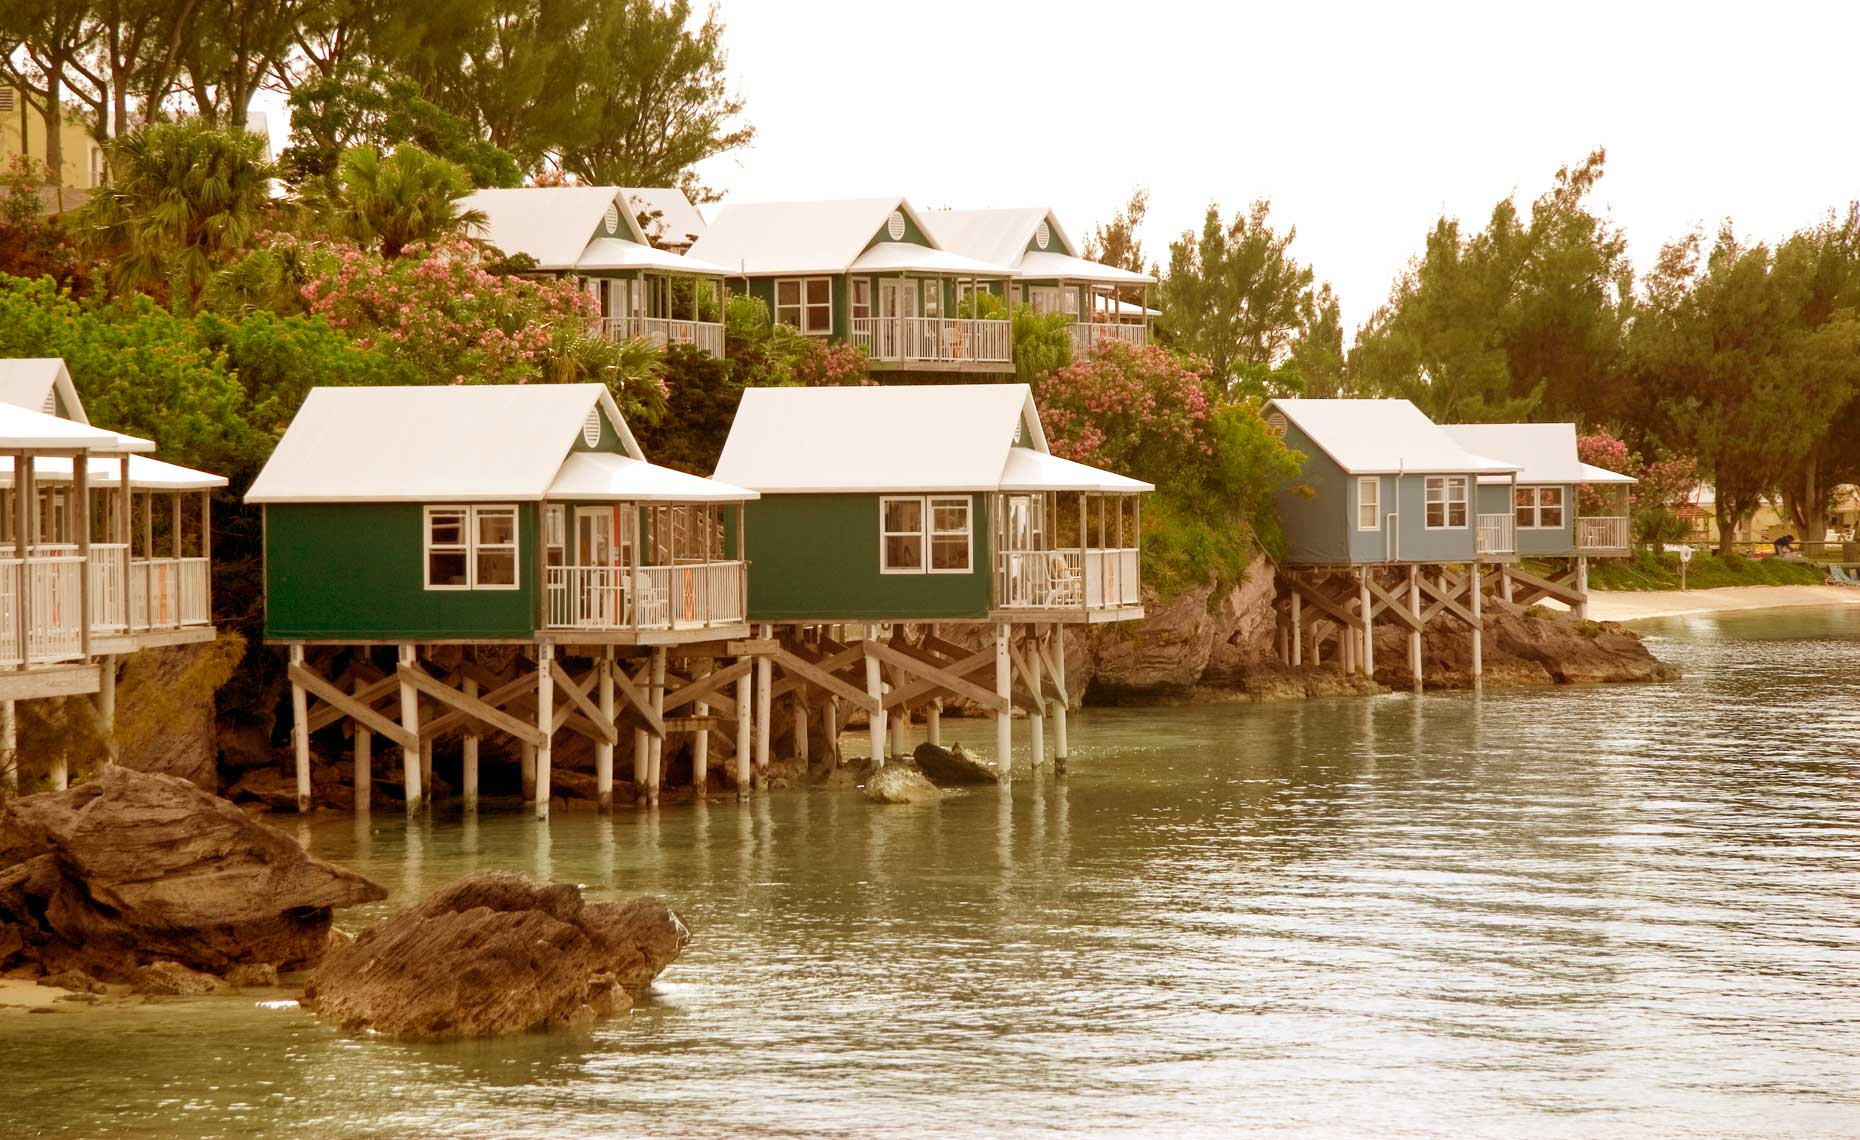 010-stilt-houses-bermuda